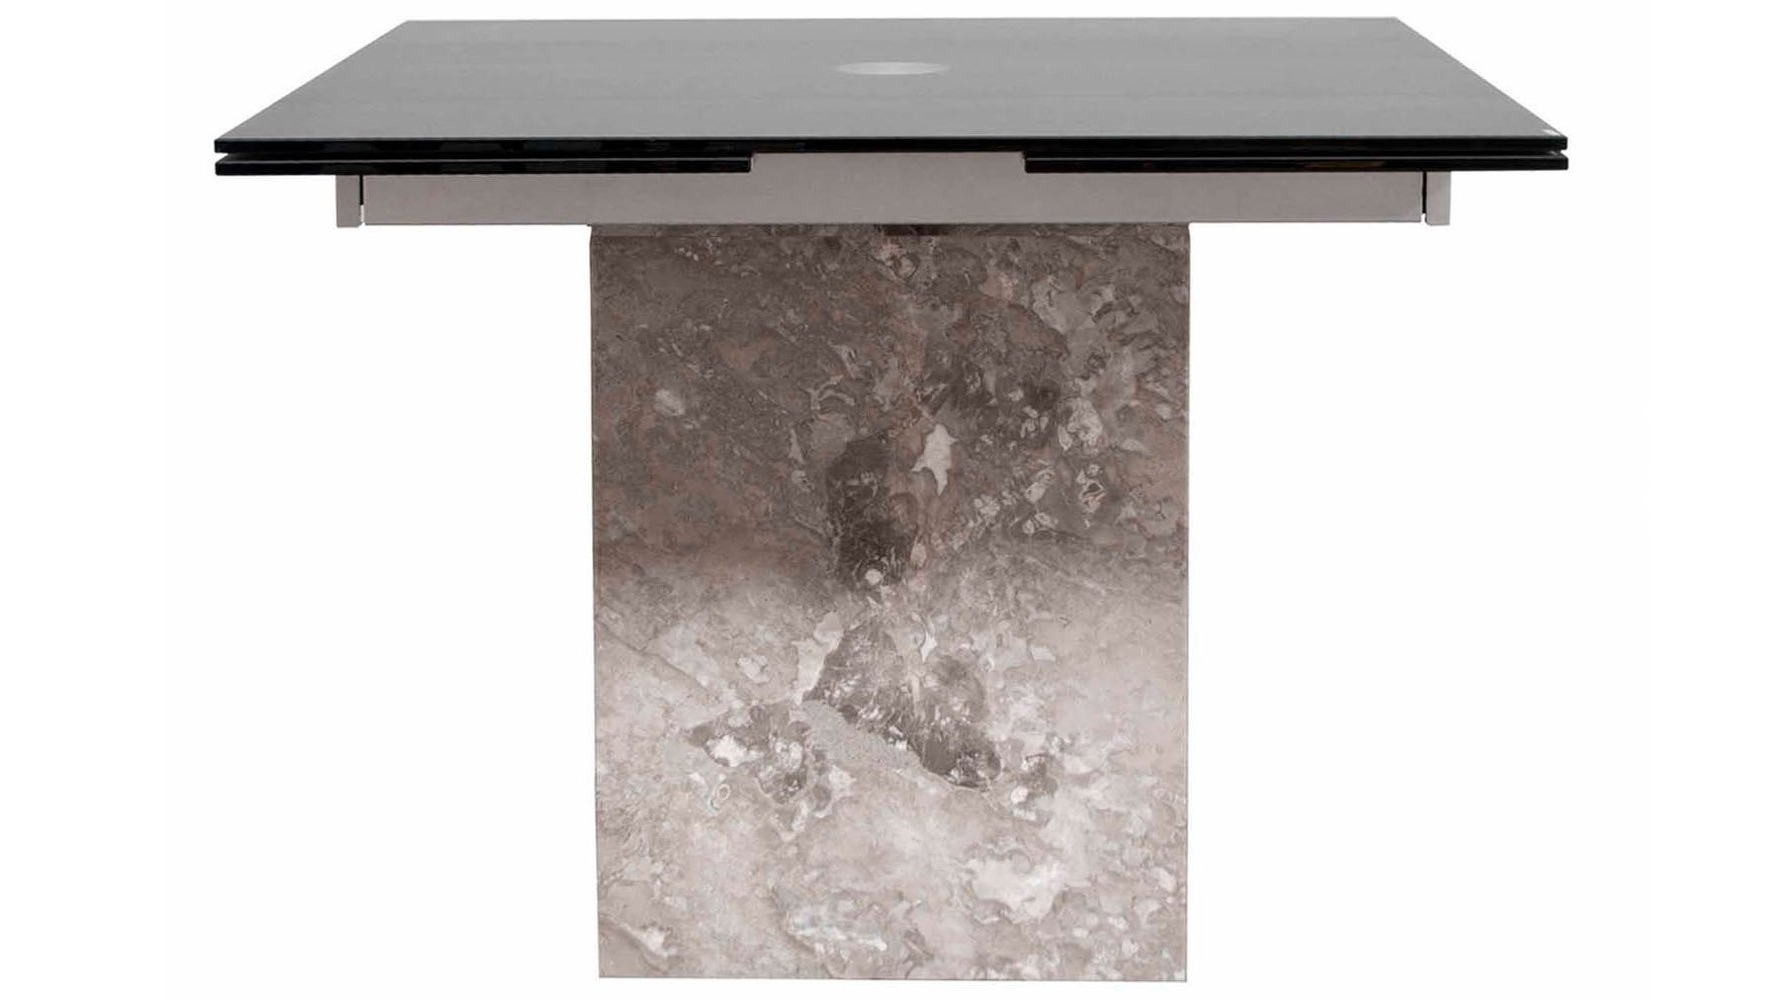 Ina Matte Black 60 Inch Counter Tables With Frosted Glass throughout Widely used Modern Citadel Extension Dining Table Grey Marble Base 12Mm Acid